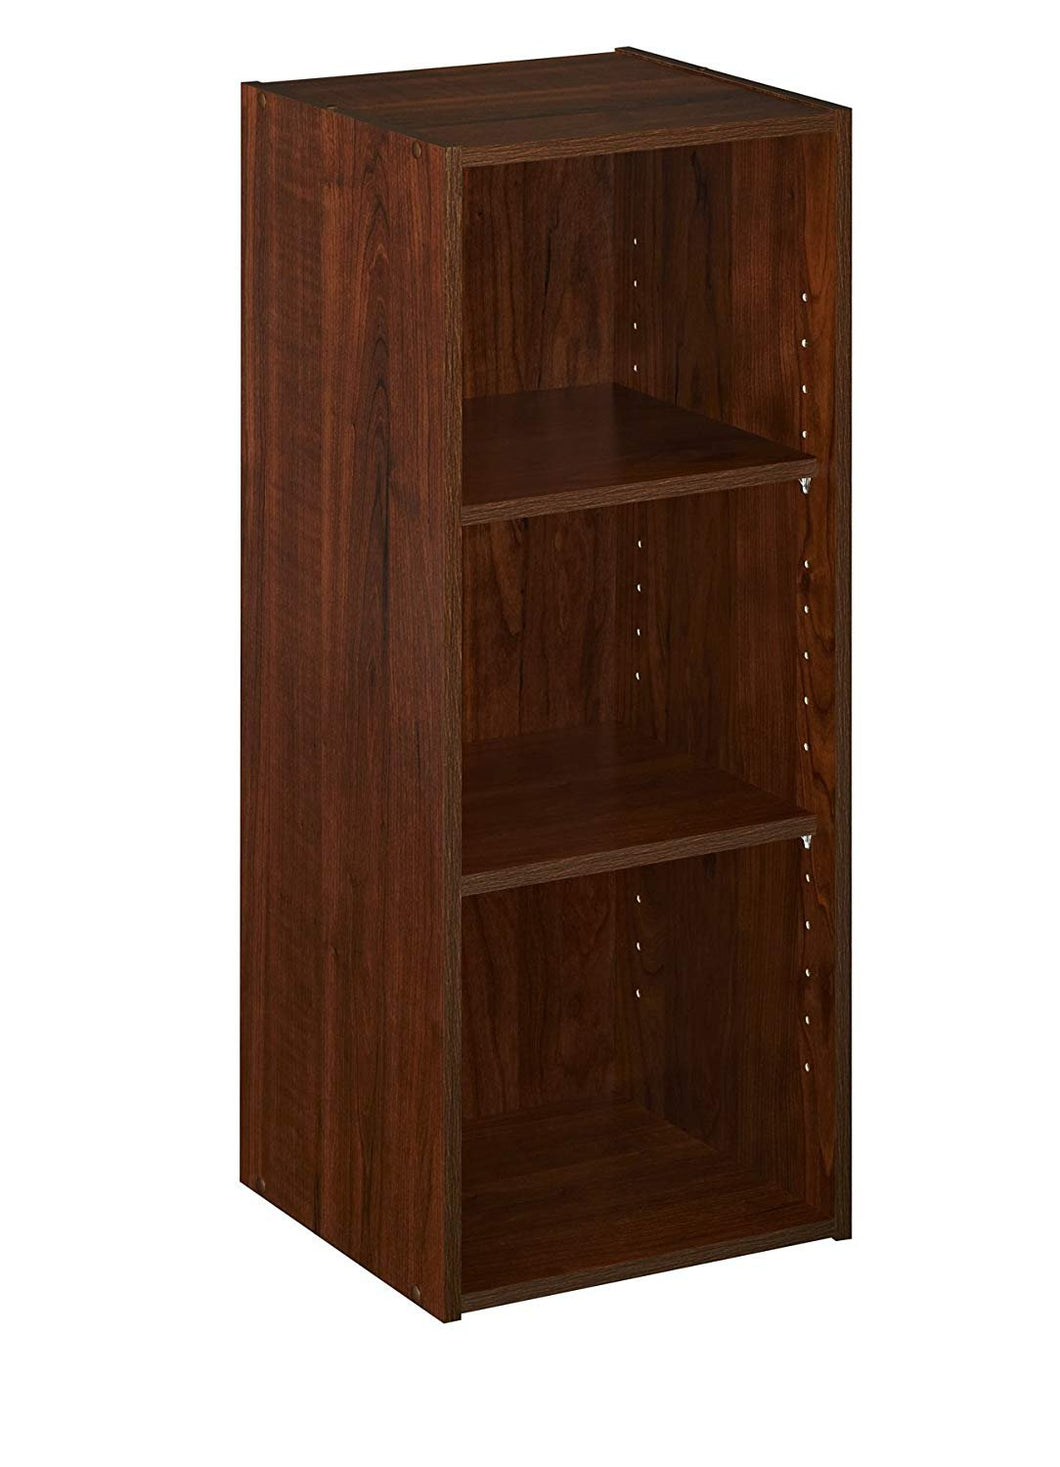 ClosetMaid 1305 Stackable 3-Shelf Organizer, Dark Cherry